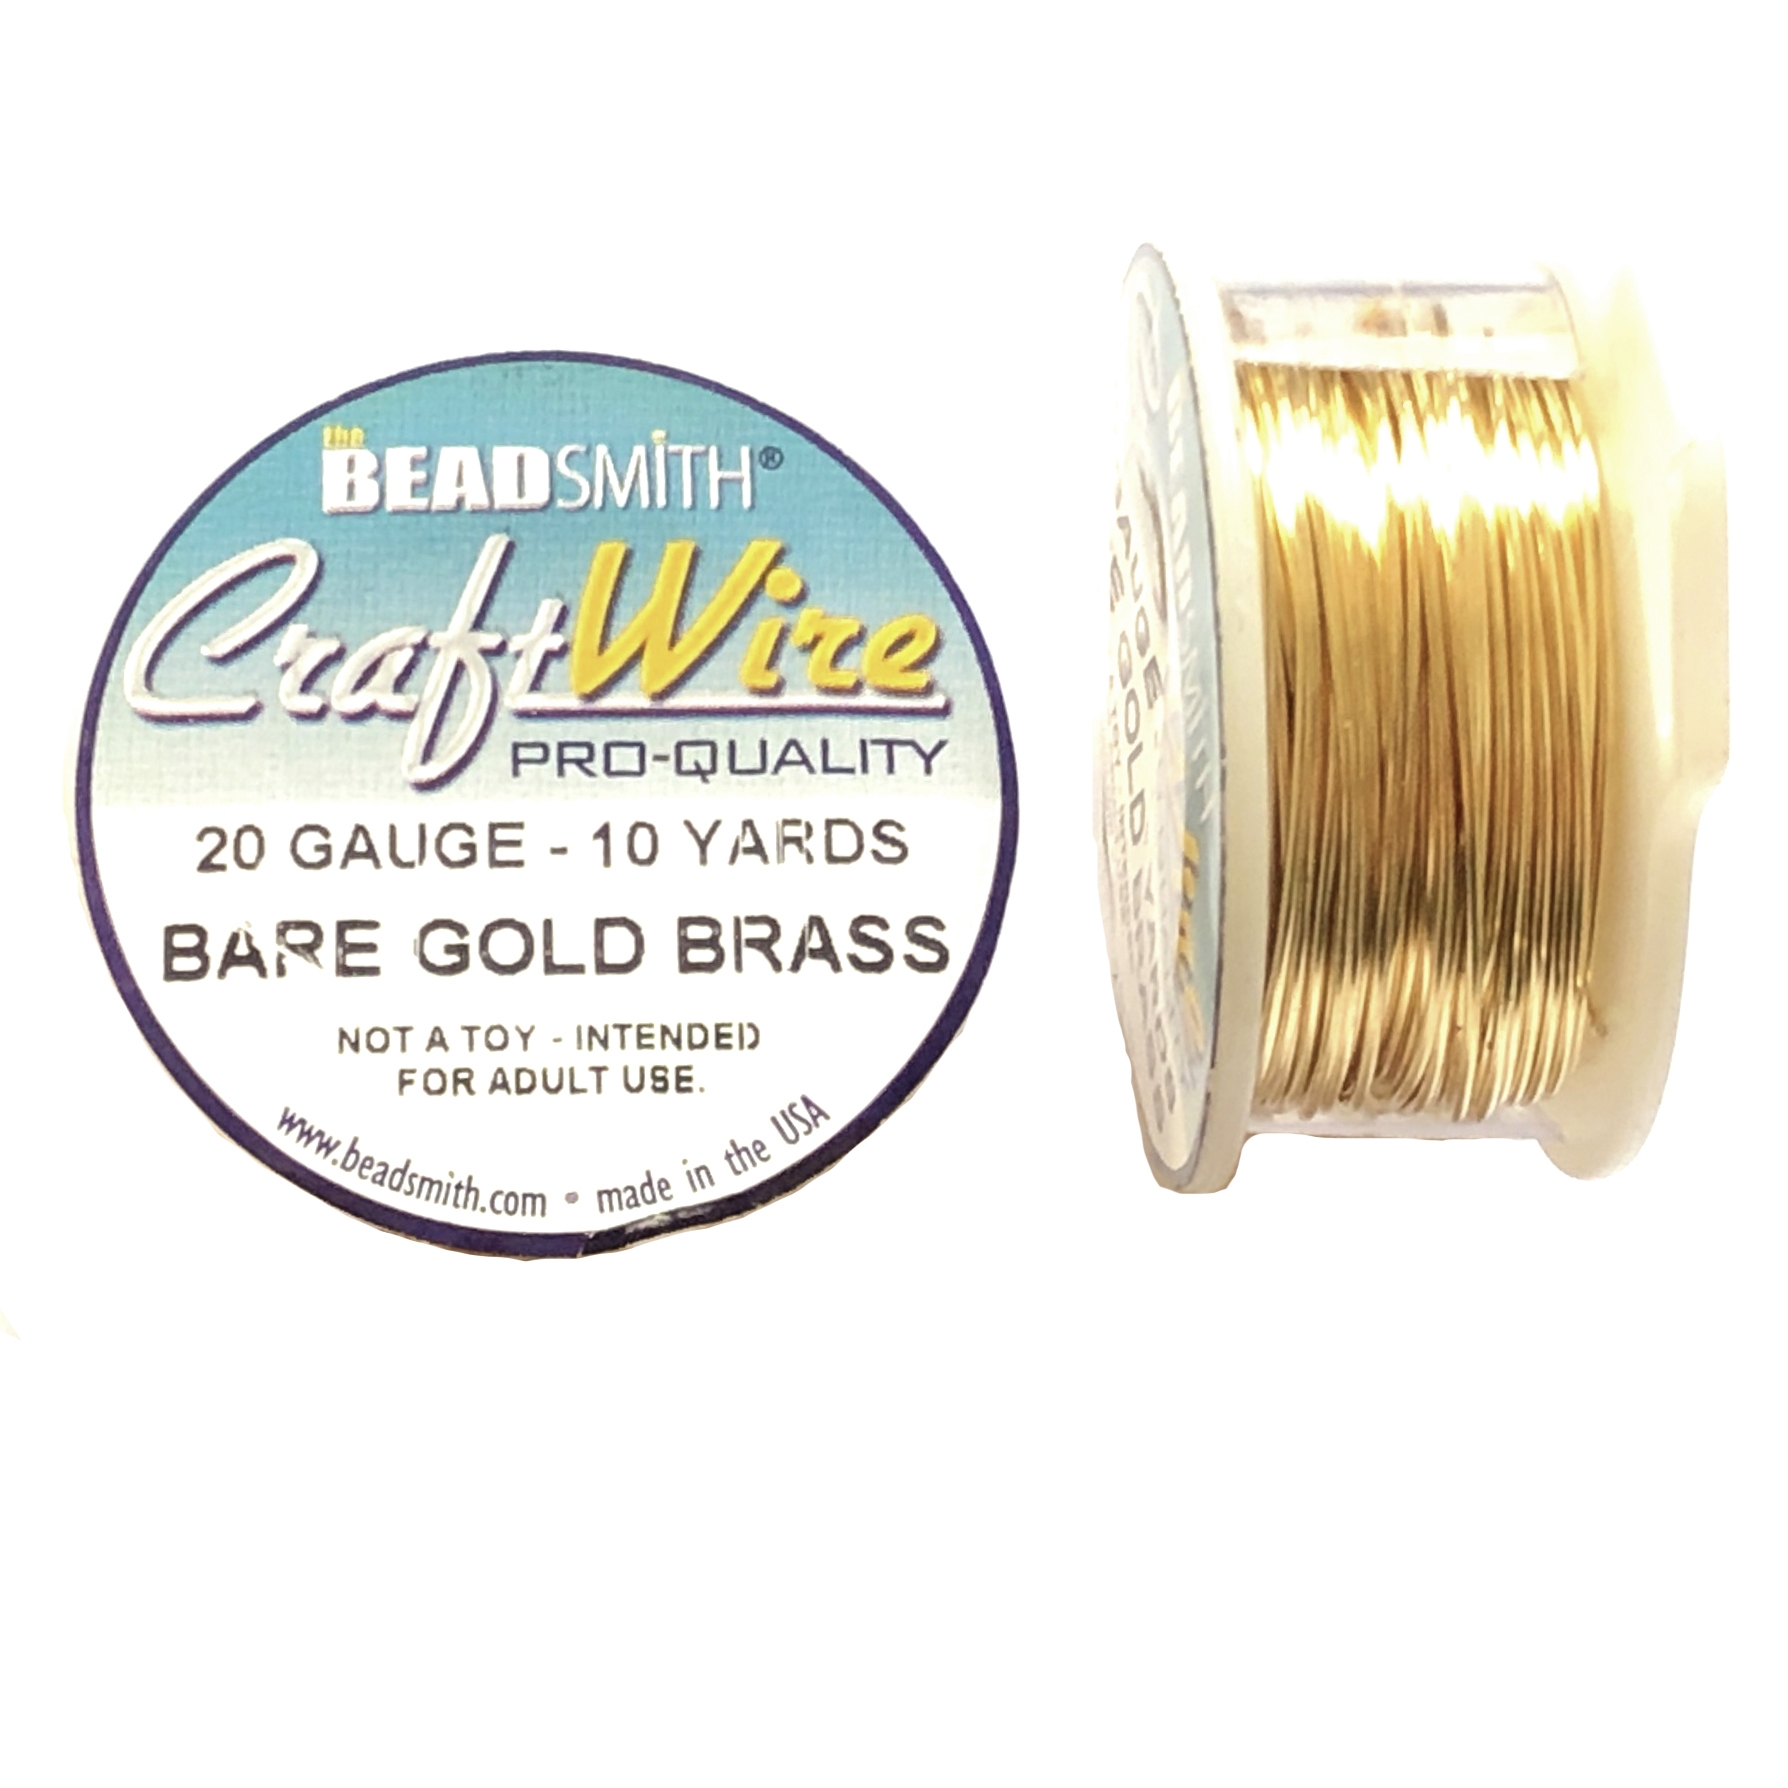 bare gold brass wire, jewelry wire, bead smith, 20 gauge, antique gold, wire, craft wire, non tarnish, 10 yards, wire jewelry, jewelry making, vintage supplies, jewelry supplies, bead smith wire, B'sue Boutiques, pro- quality, spool, 09797